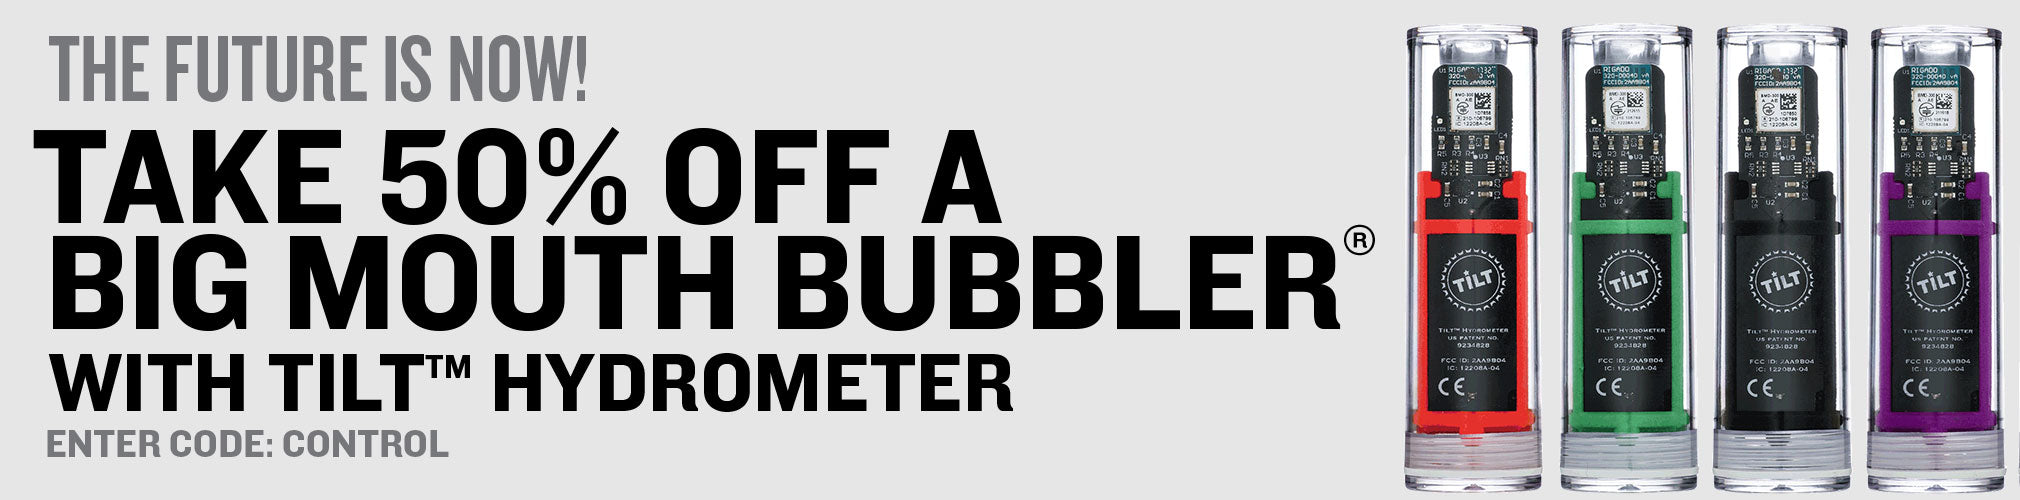 50% Off A Big Mouth Bubbler Fermenter With Purchase of Tilt Hydrometer